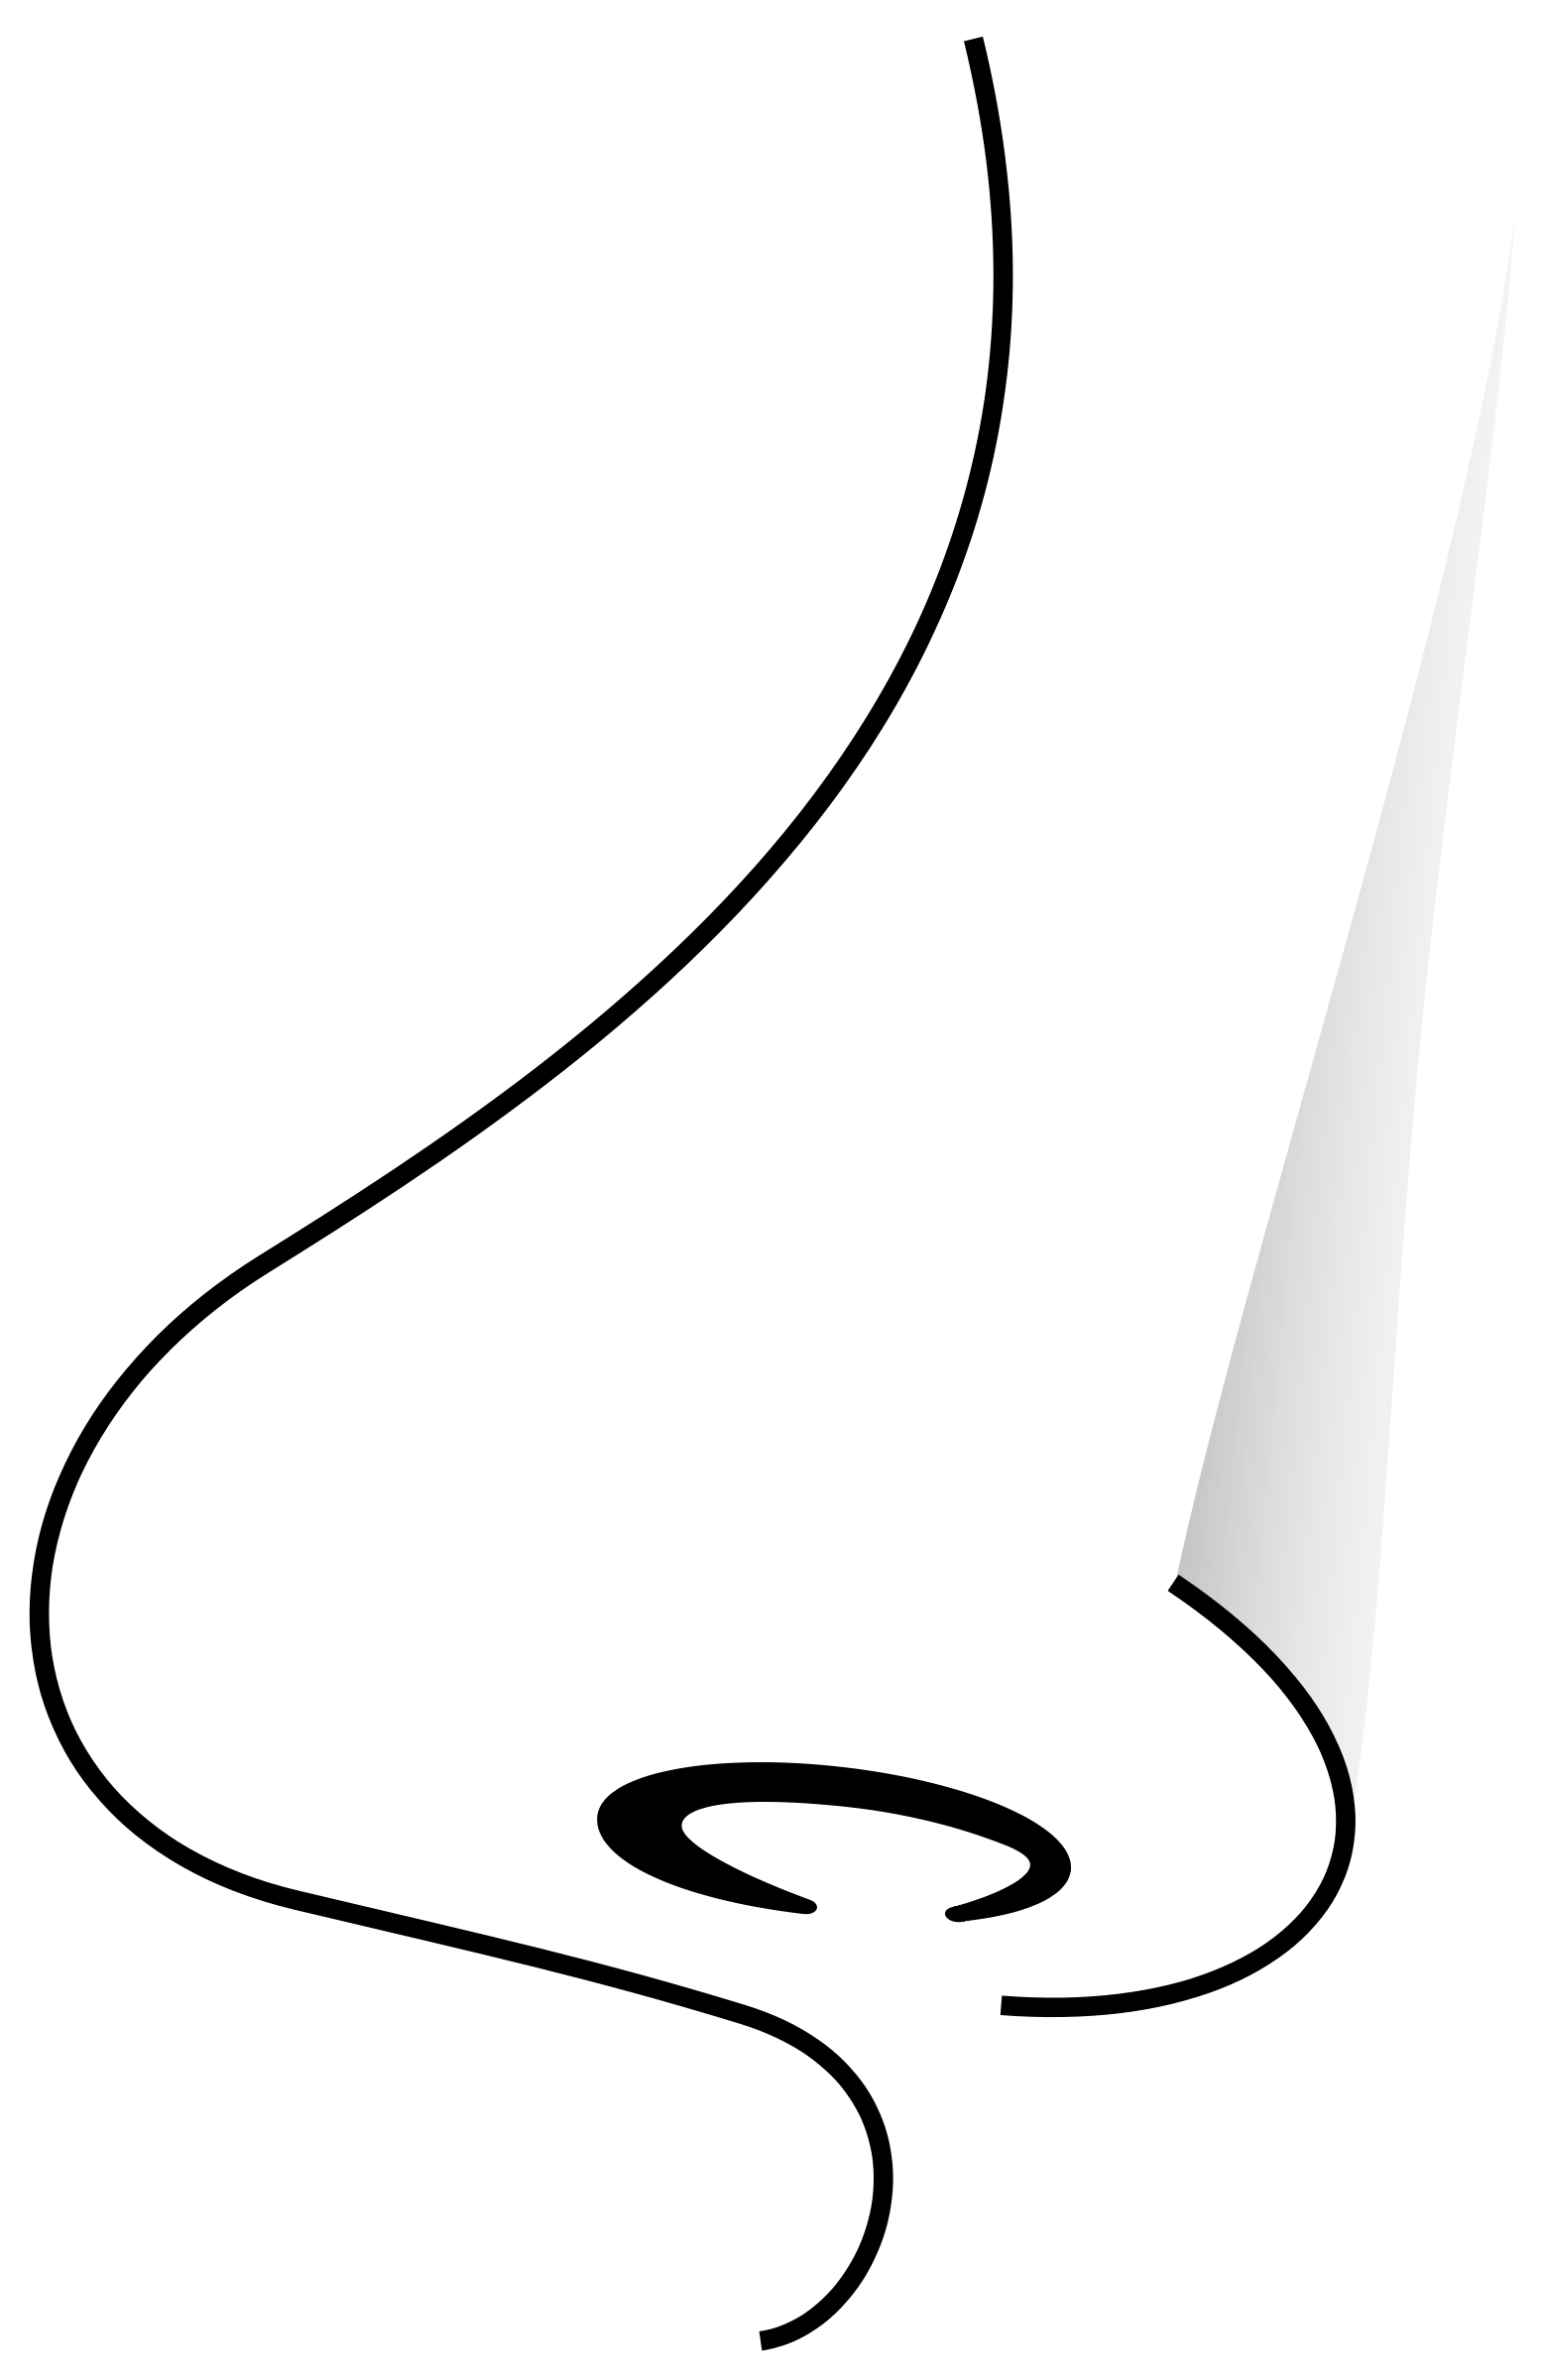 nose clipart black and white - photo #17